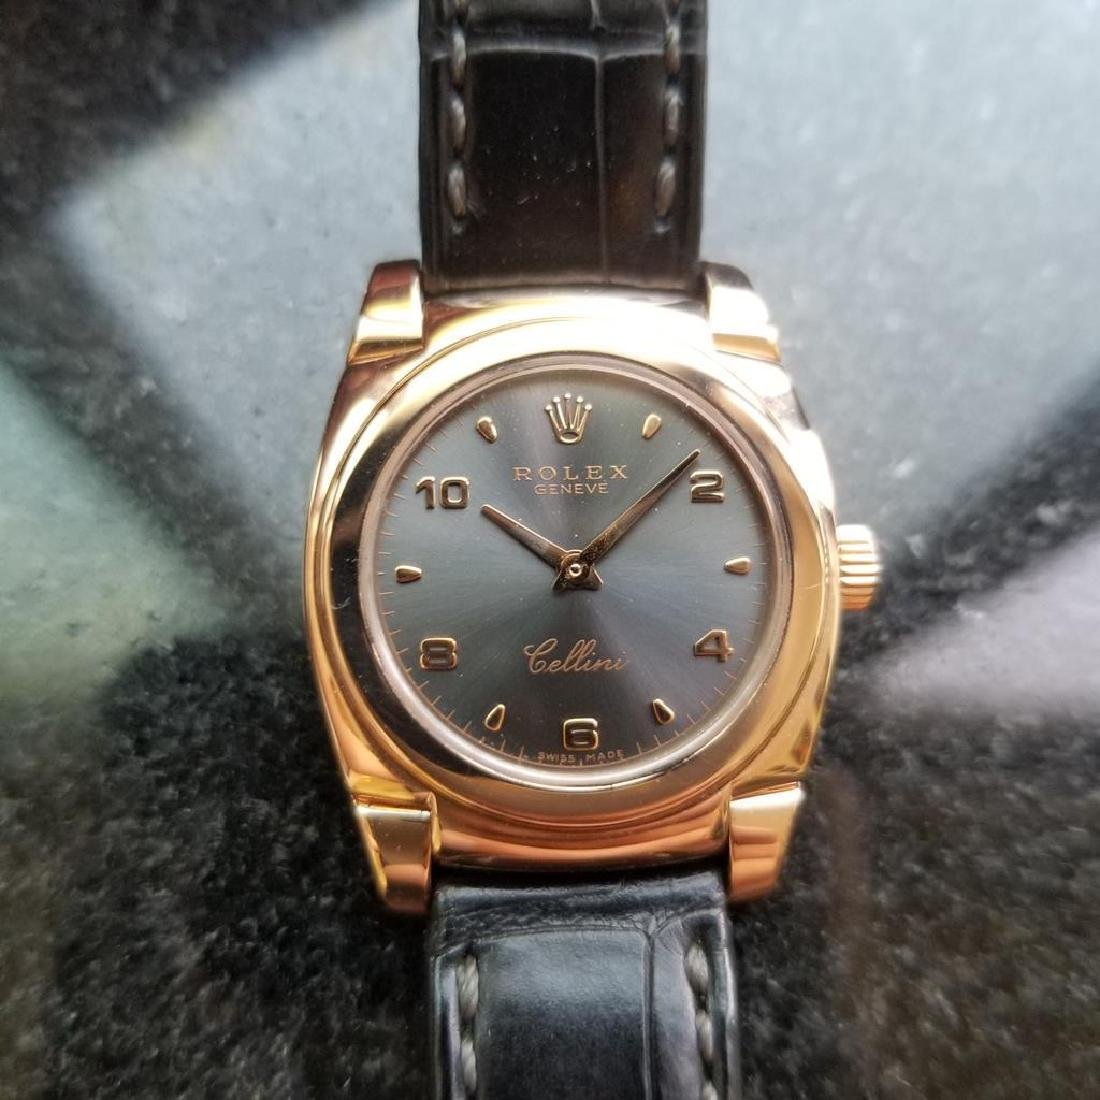 ROLEX 18K Rose Gold Ladies Cellini Cestello ref. 5310